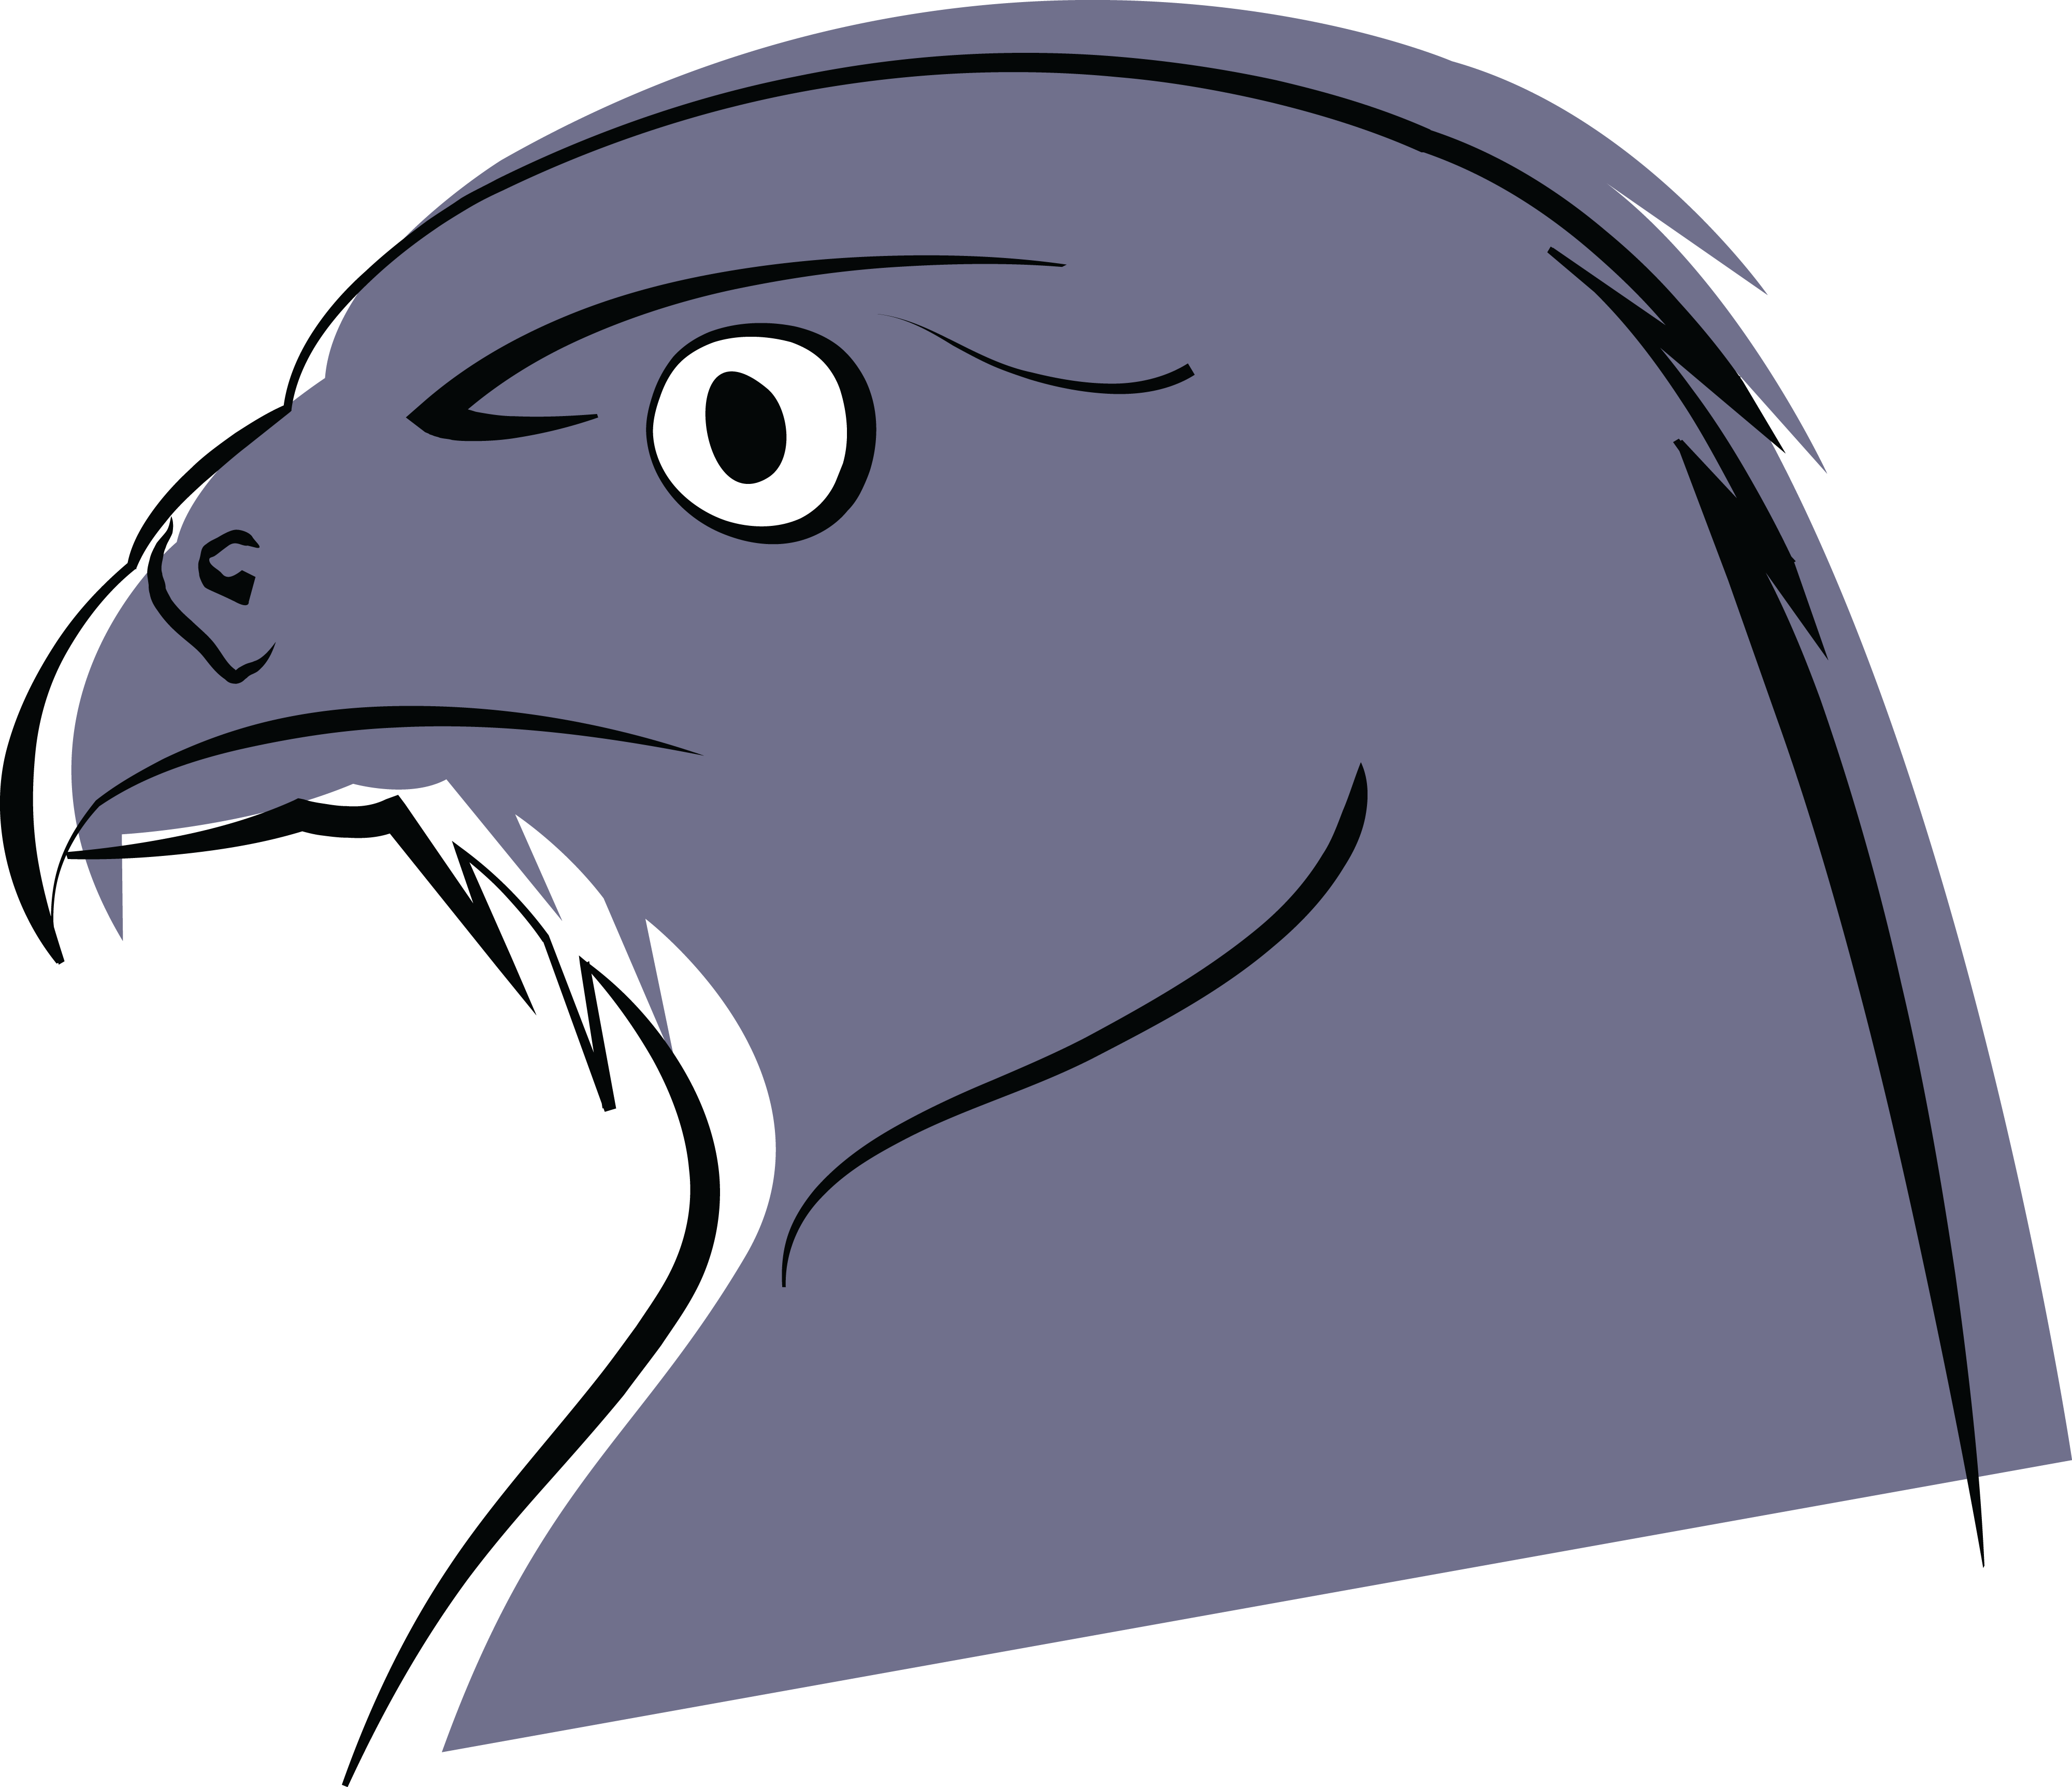 Unkraut Clipart Falcon Head Drawing At Getdrawings Free For Personal Use